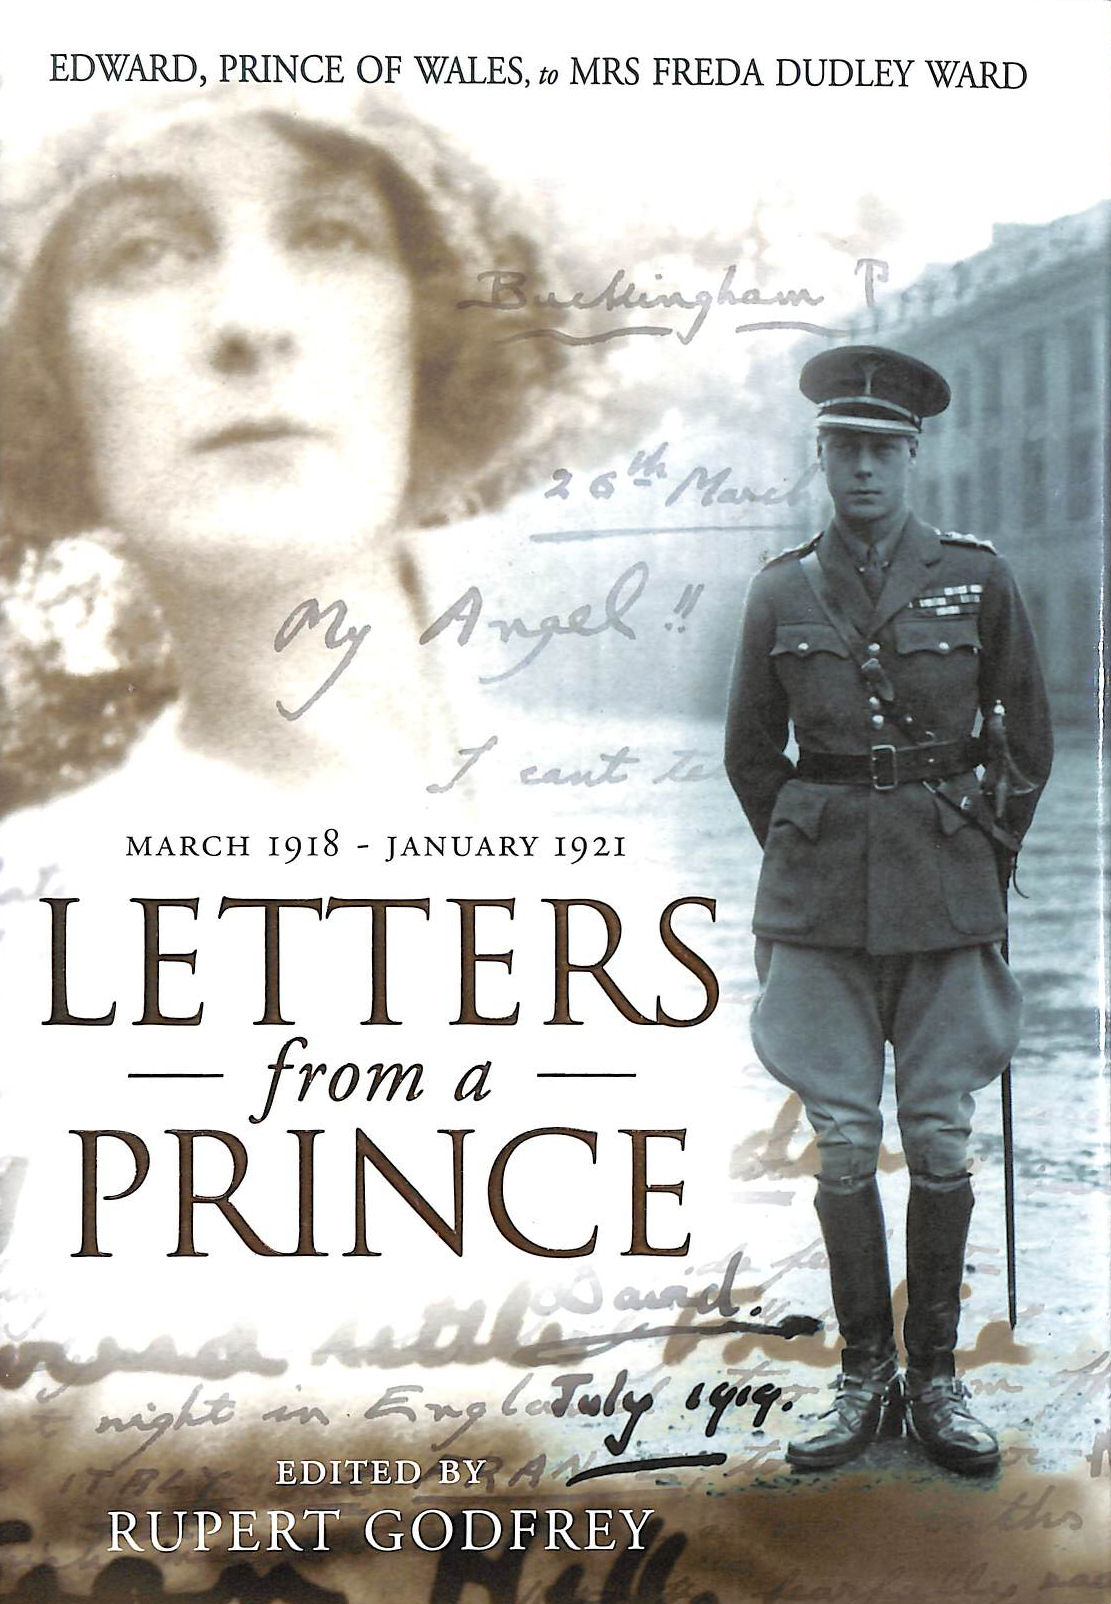 Image for Letters from a Prince: Edward, Prince of Wales, to Mrs Freda Dudley Ward, March 1918 - January 1921